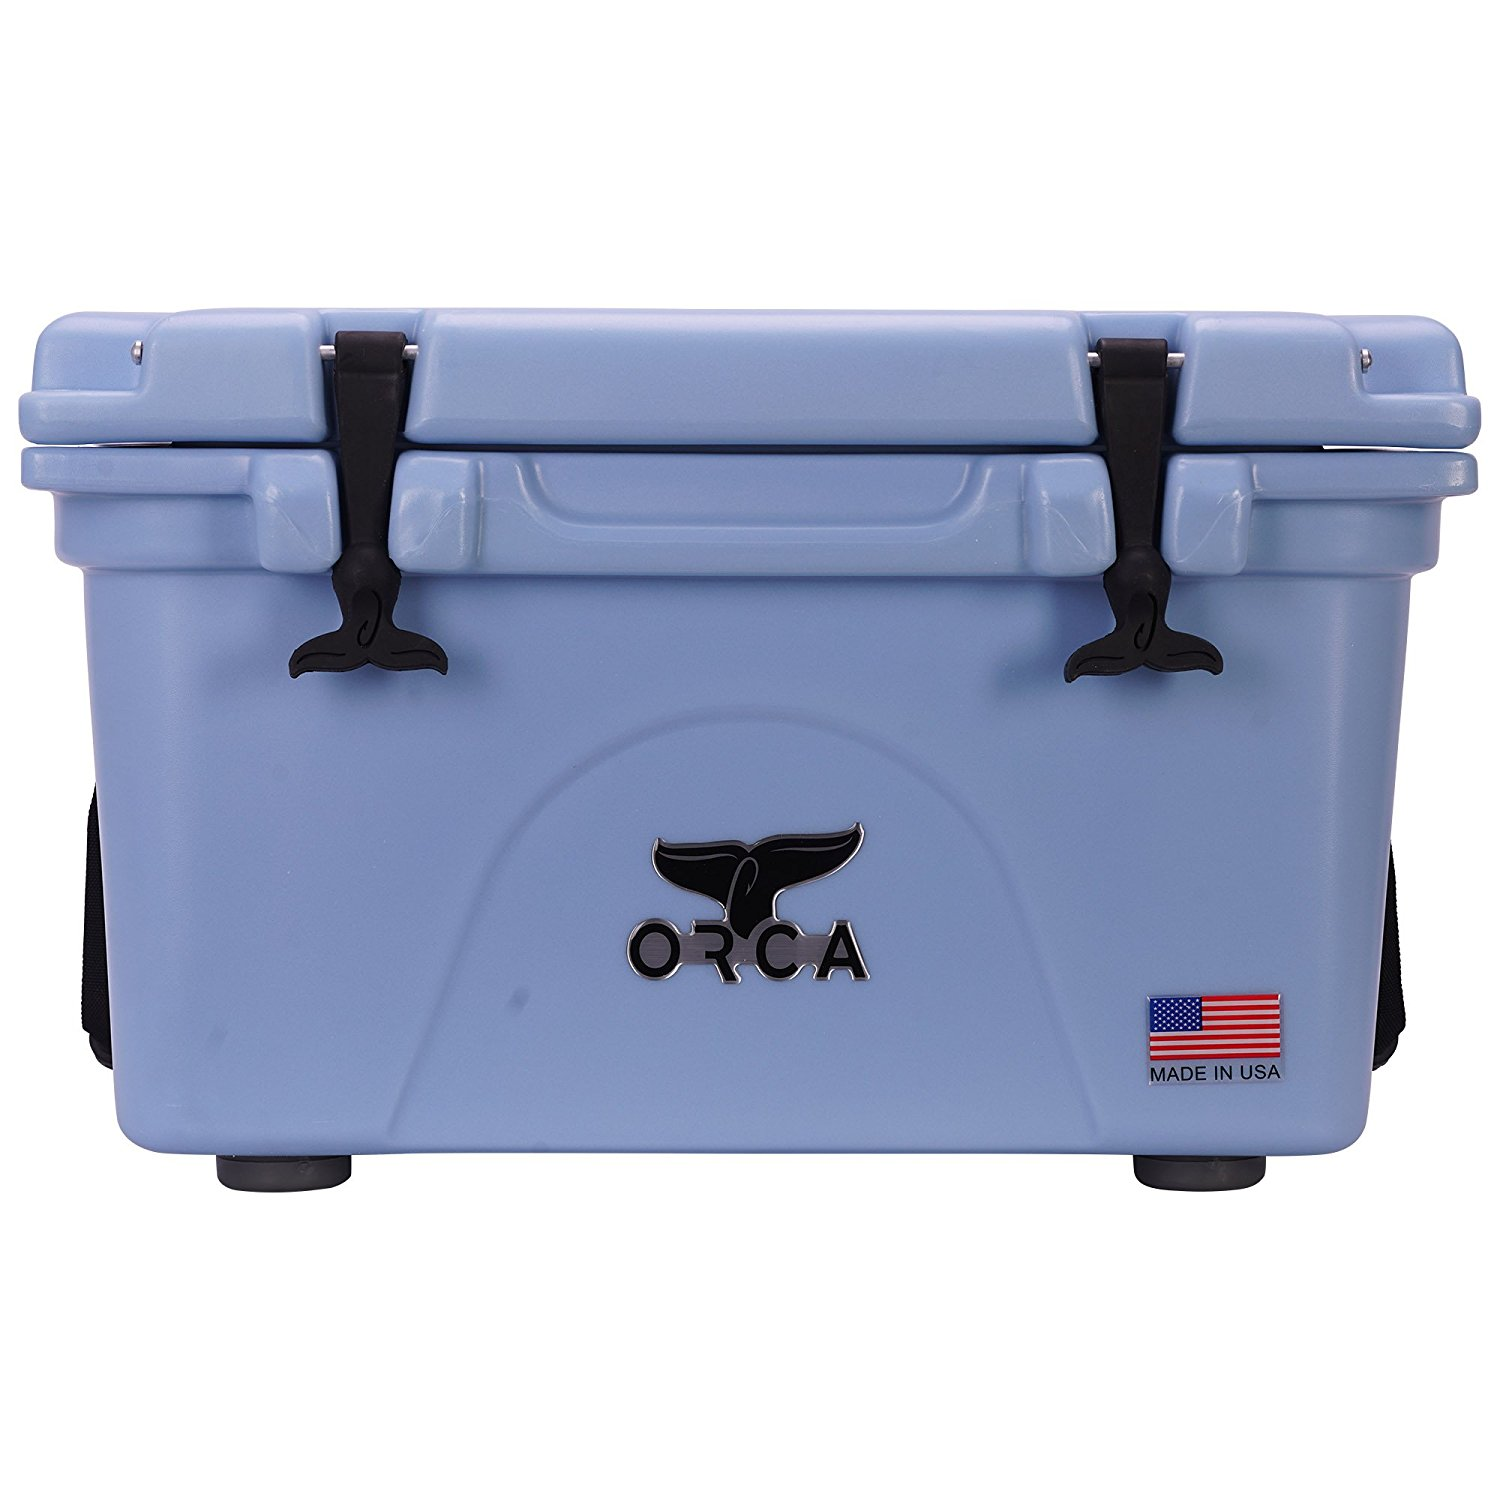 ORCA 26 Quart Cooler Light Blue USA Made